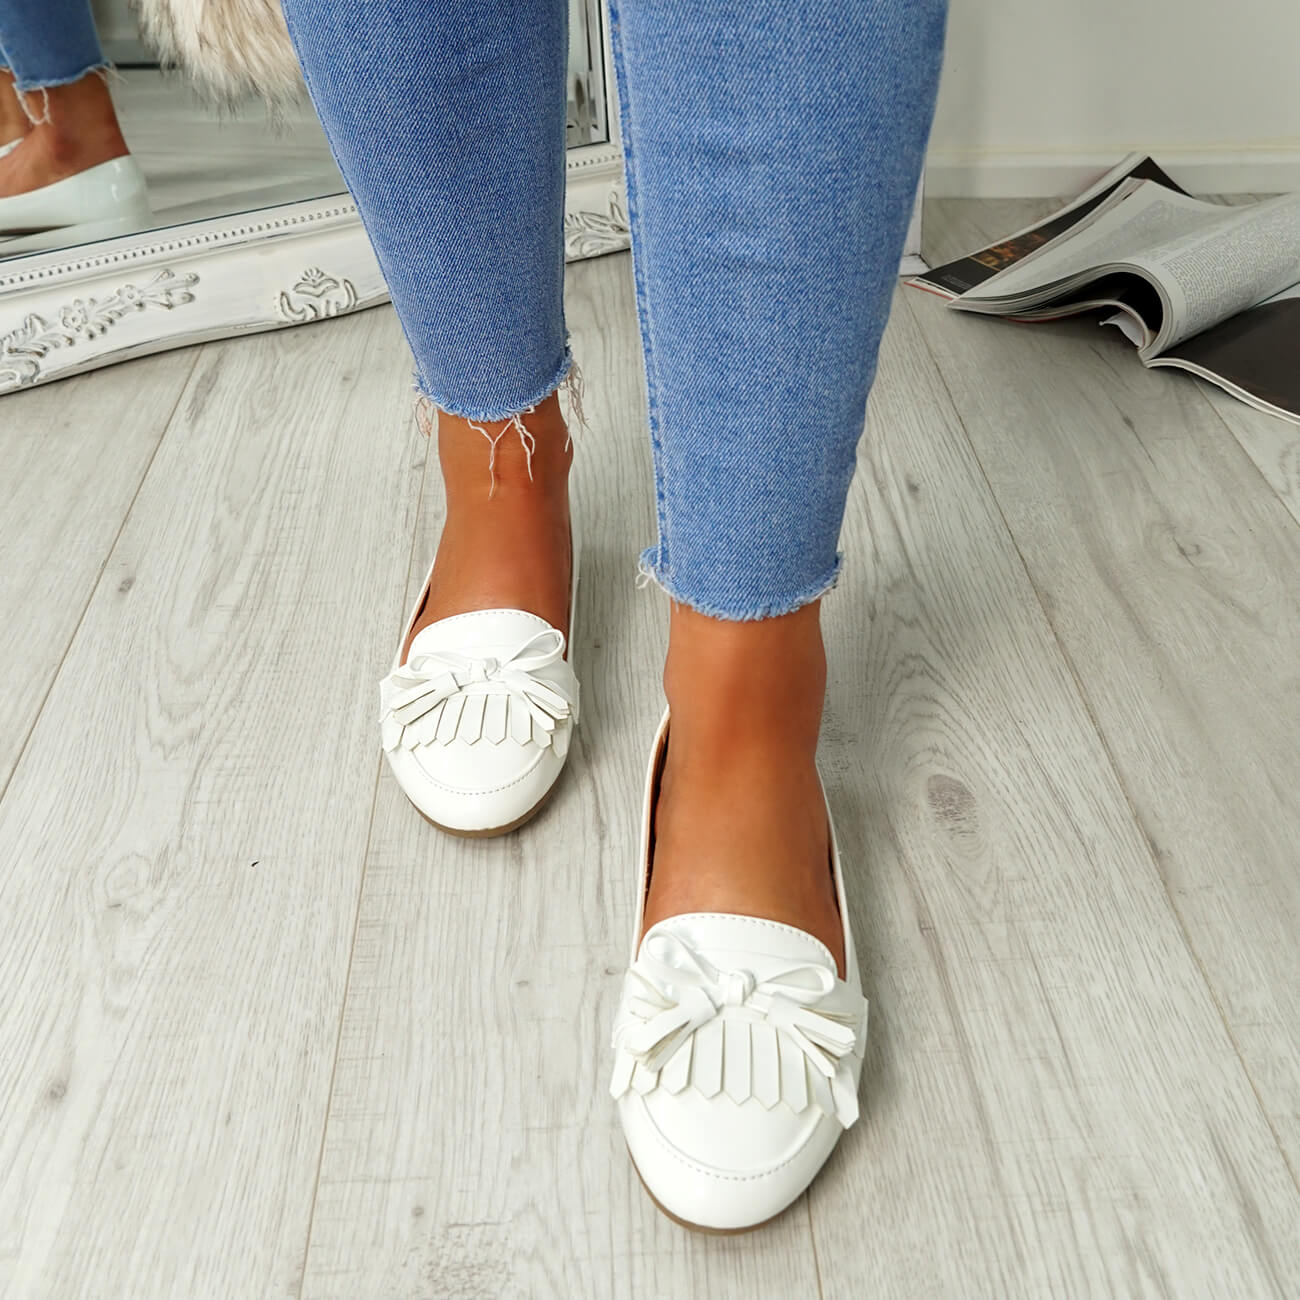 WOMENS-LADIES-FRINGE-BALLERINAS-SLIP-ON-FLAT-DOLLY-PUMPS-CASUAL-SMART-SHOES-SIZE thumbnail 32